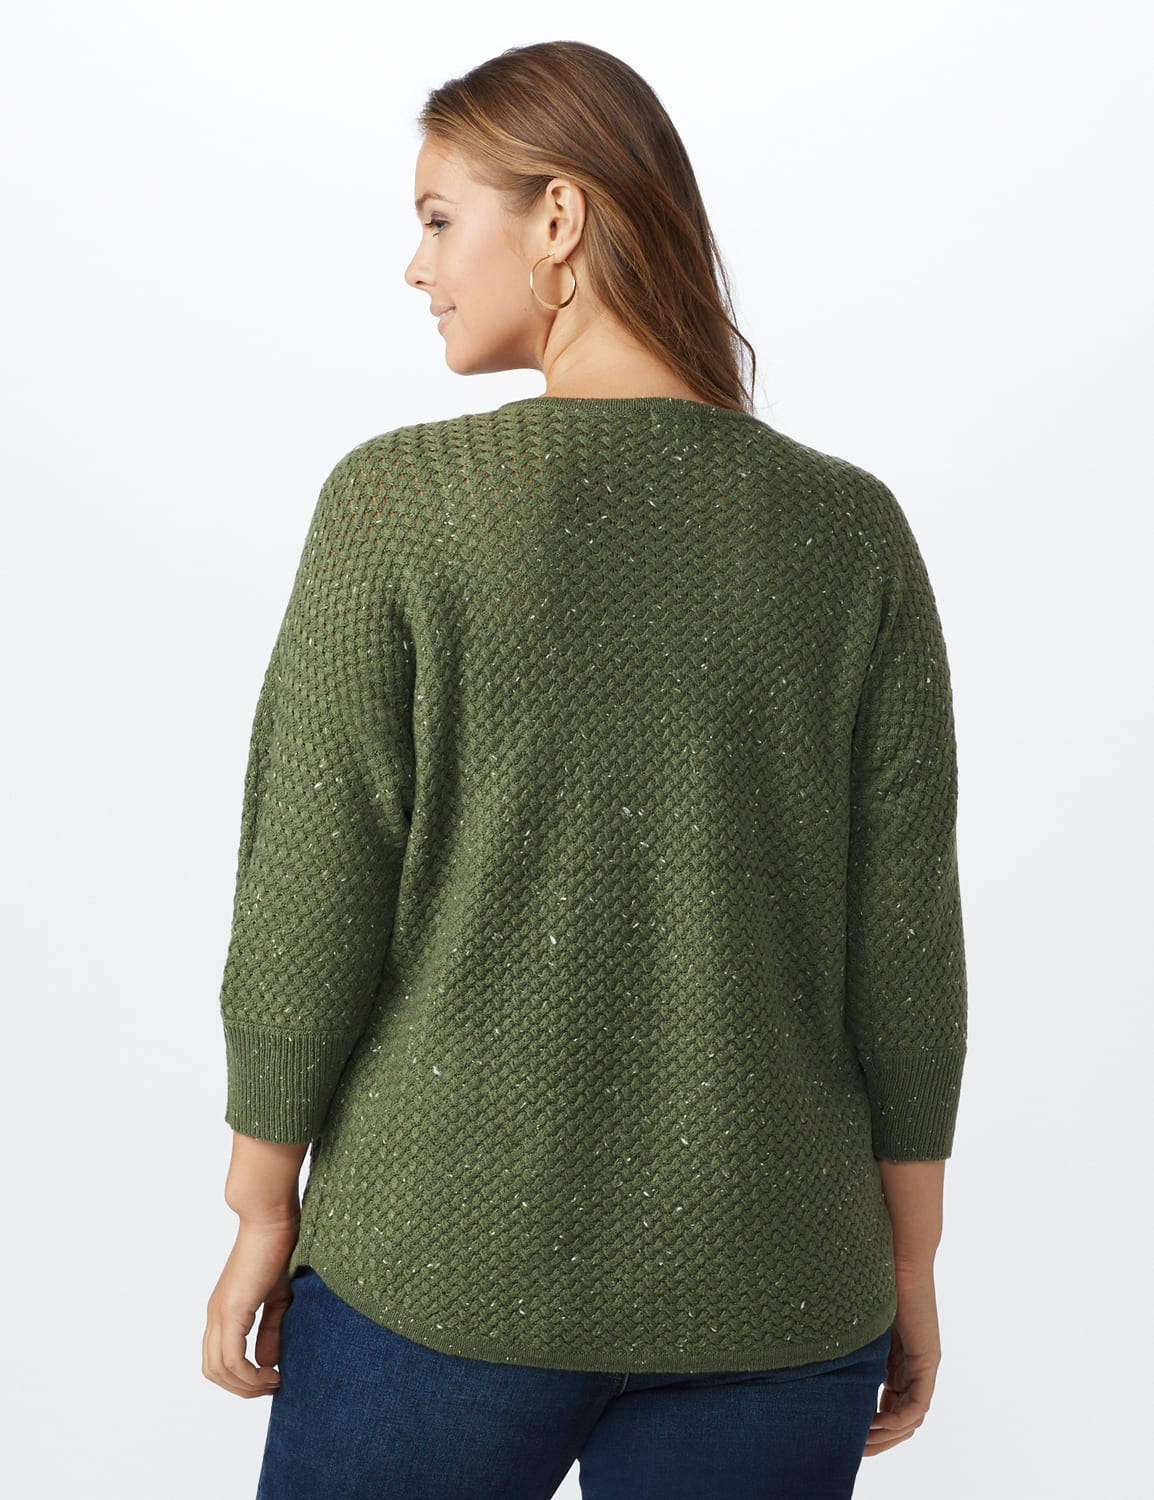 Westport Zig Zag Stitch Curved Hem Sweater - Plus - Dried Sage - Back